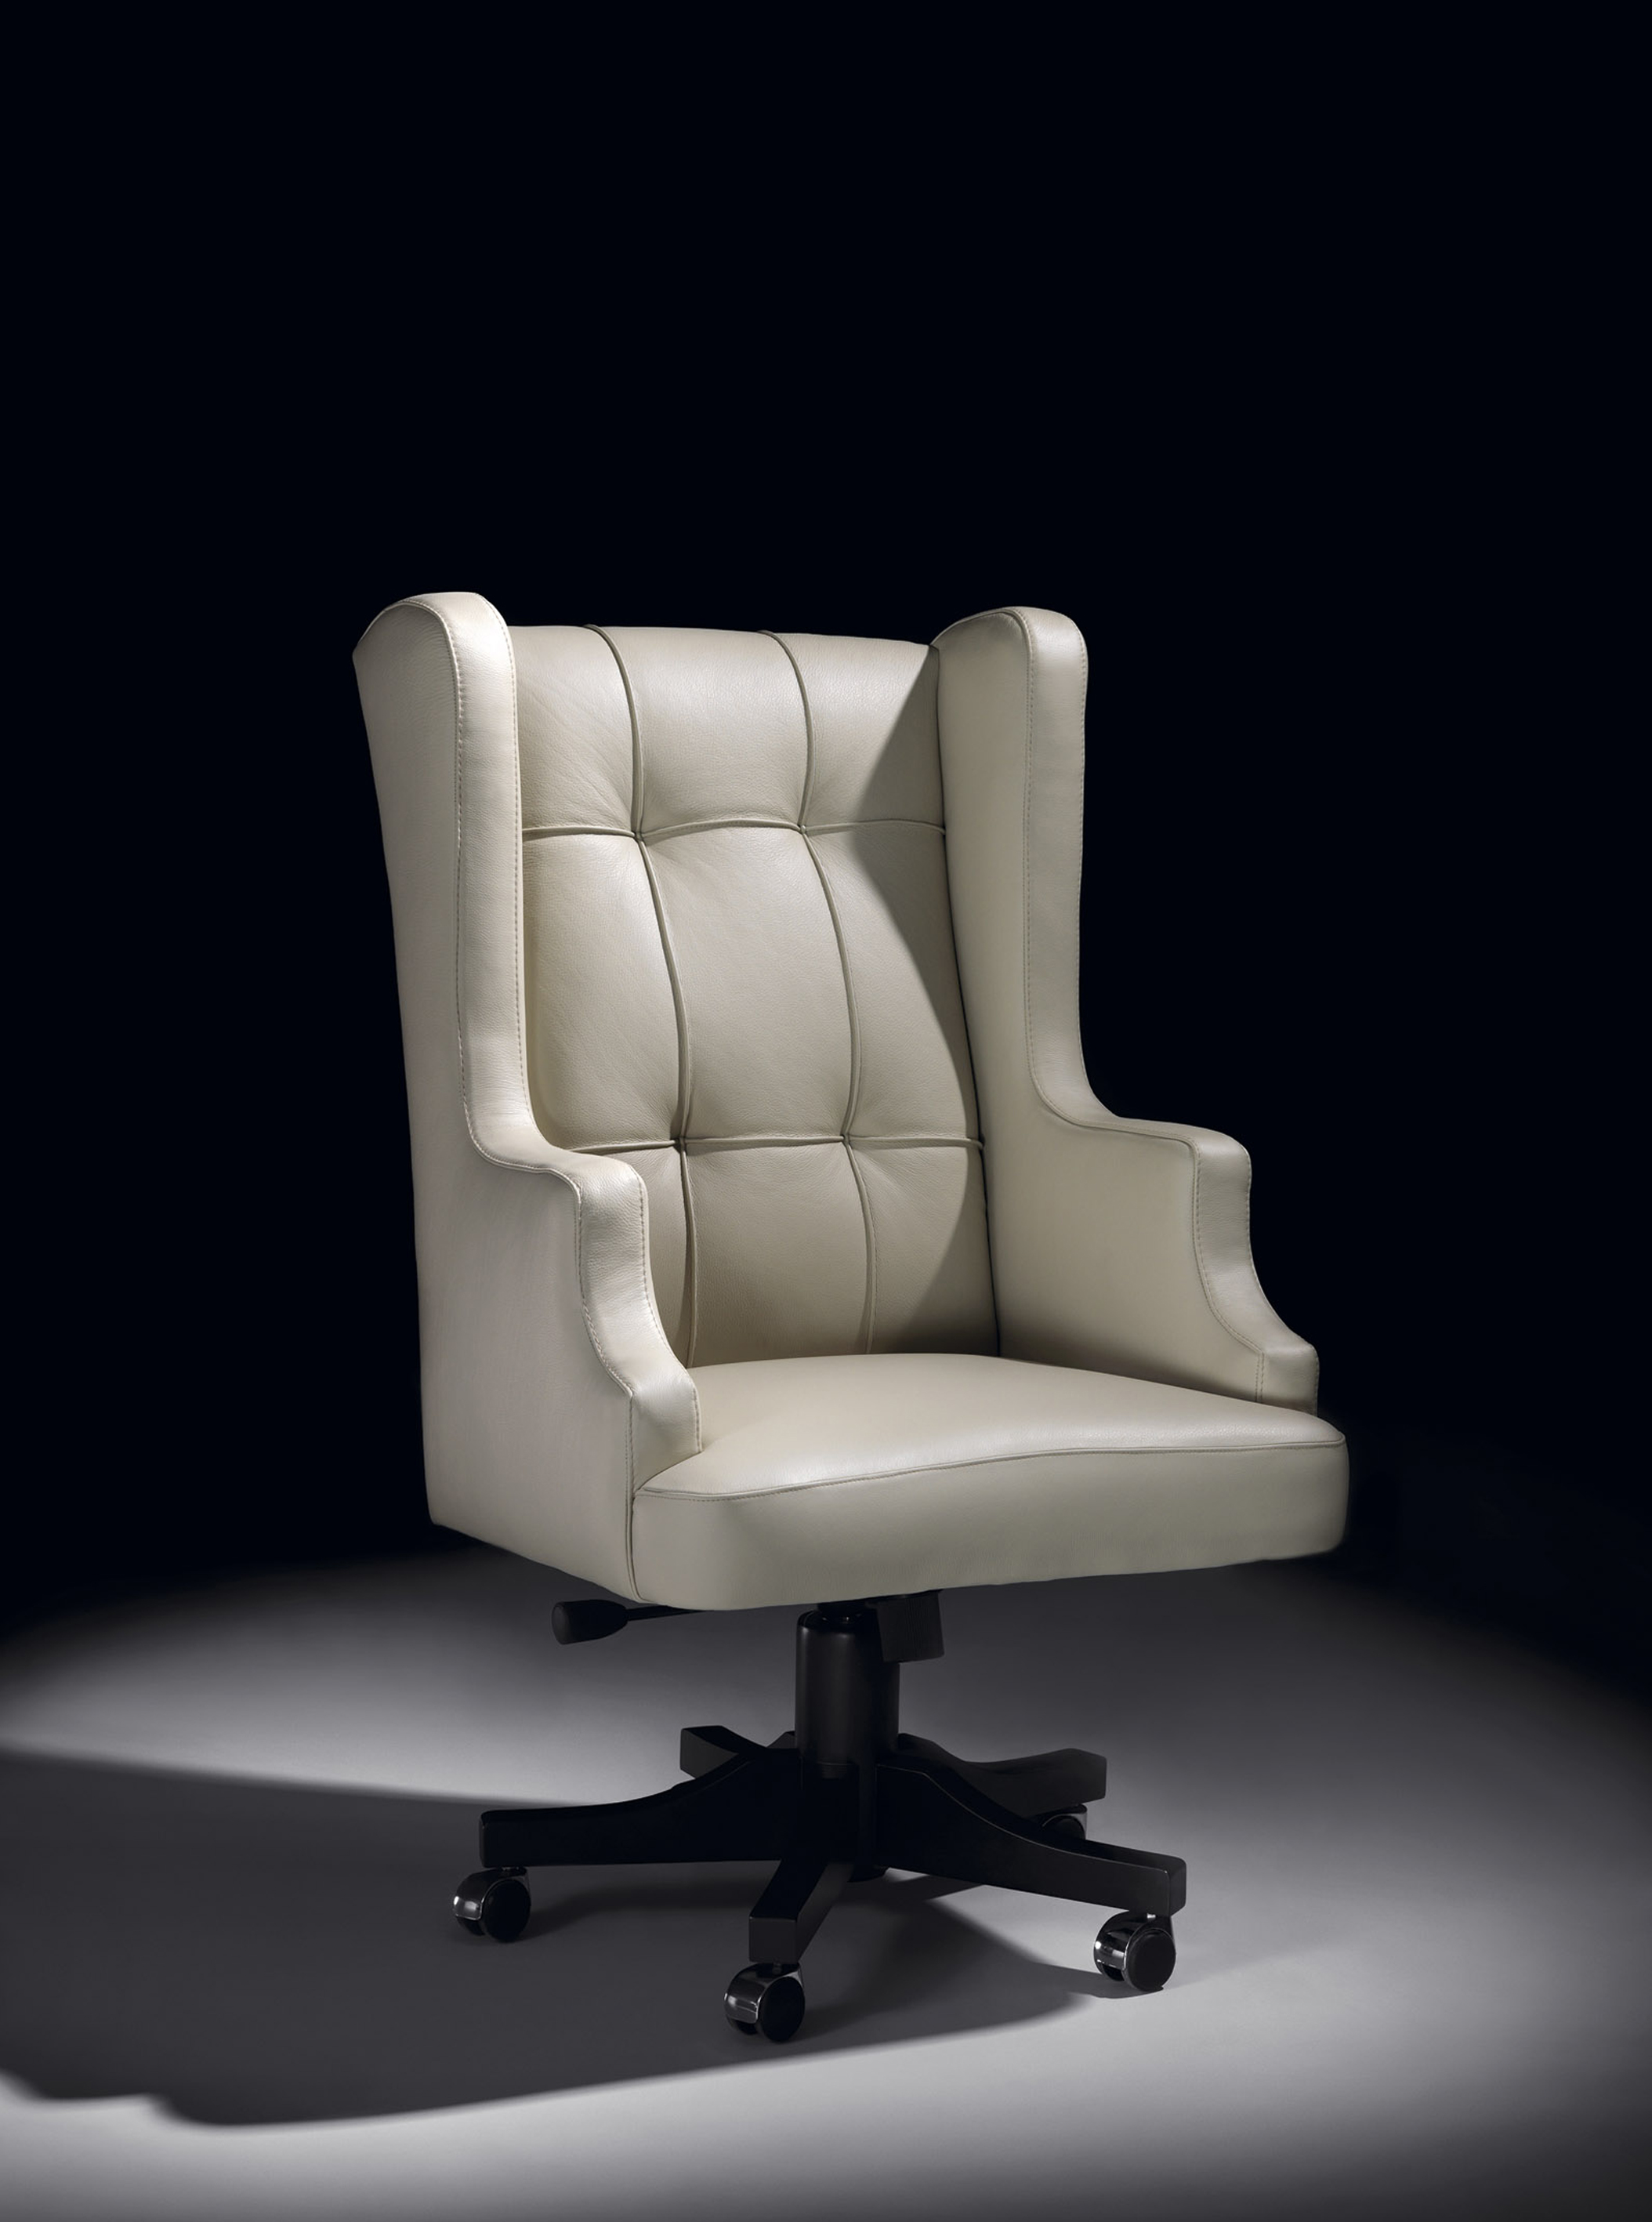 leather office chair, home office chair, luxury office chair